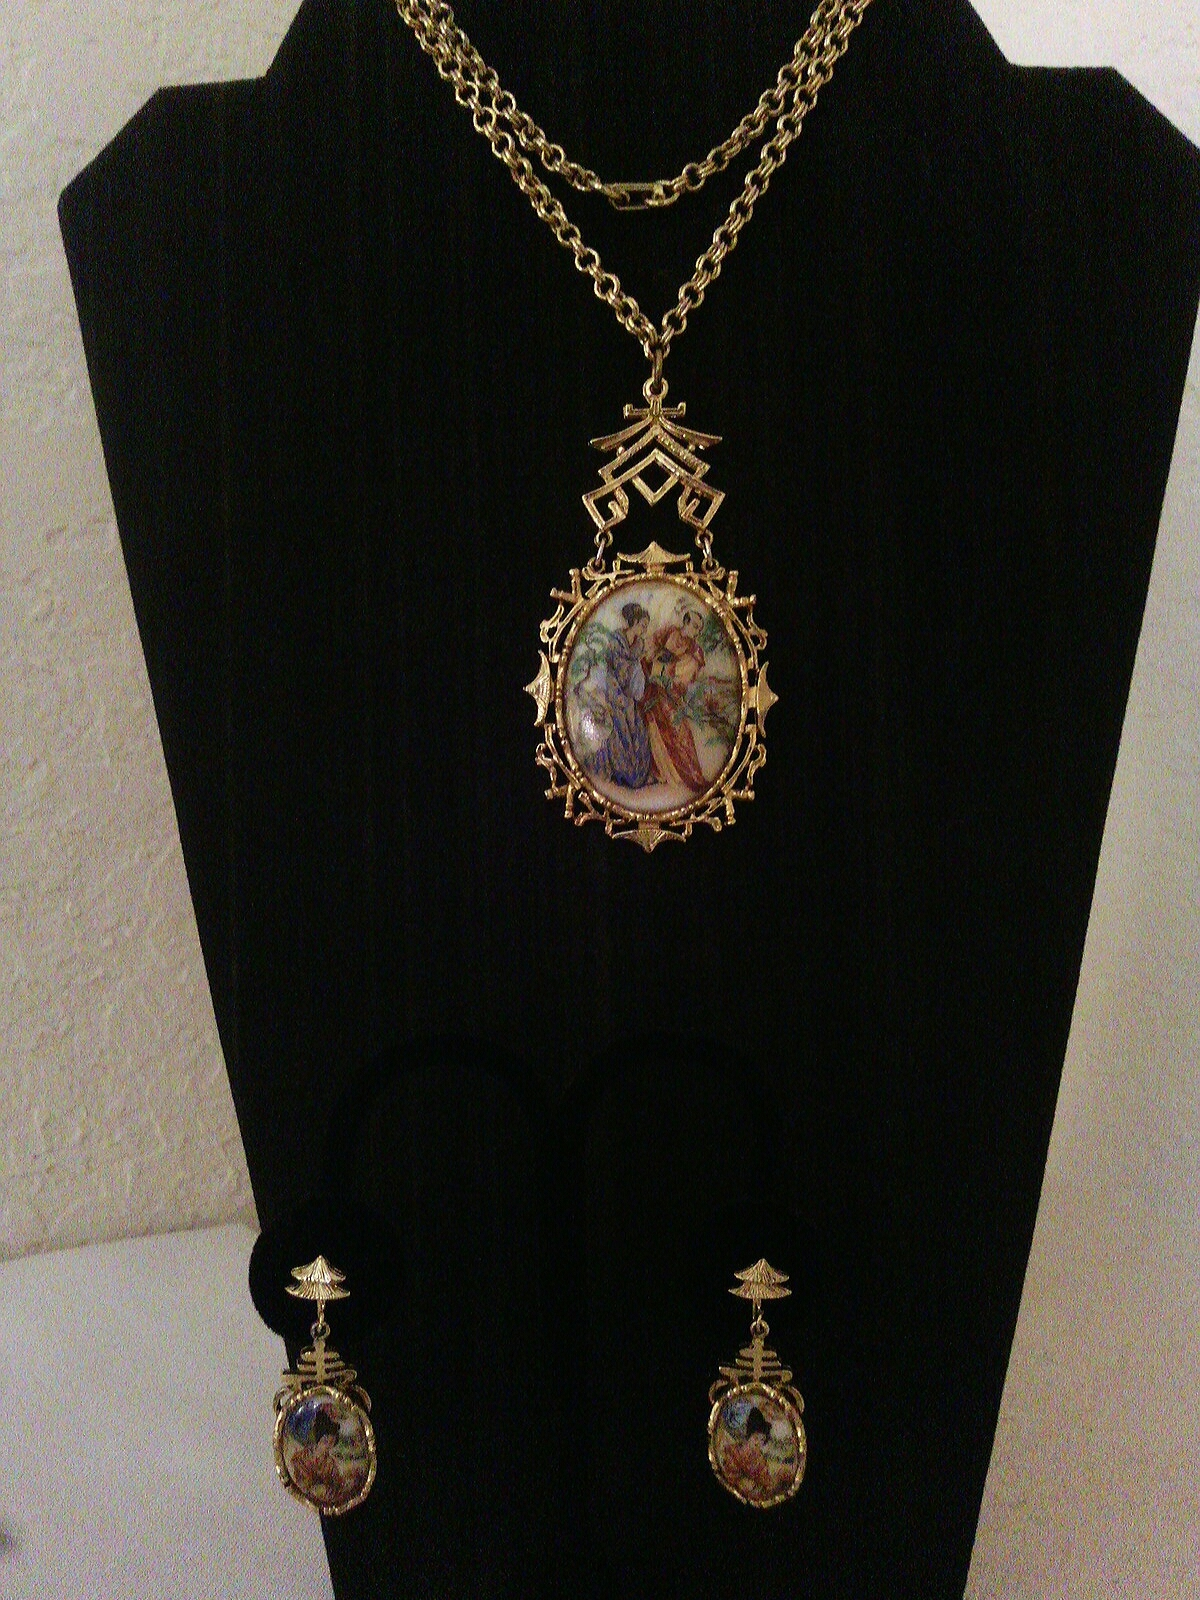 Vintage Art Mode Signed Asian Motif Gold Tone Necklace and Earrings Jewelry Set